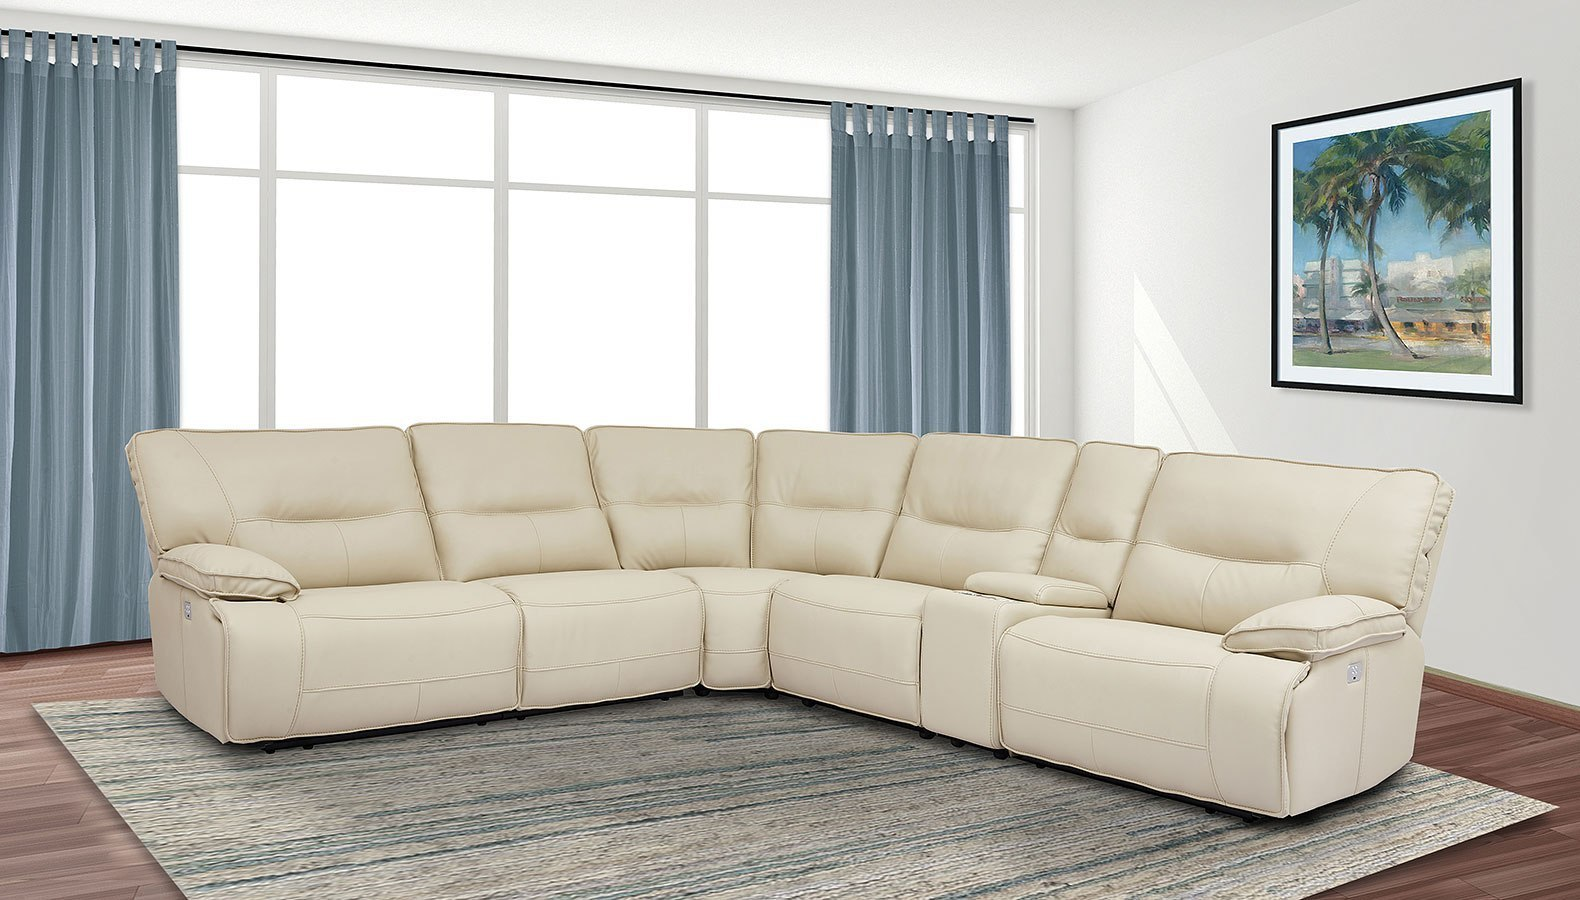 sofa rph bed single size spartacus modular power reclining sectional set oyster parker living furniture cart